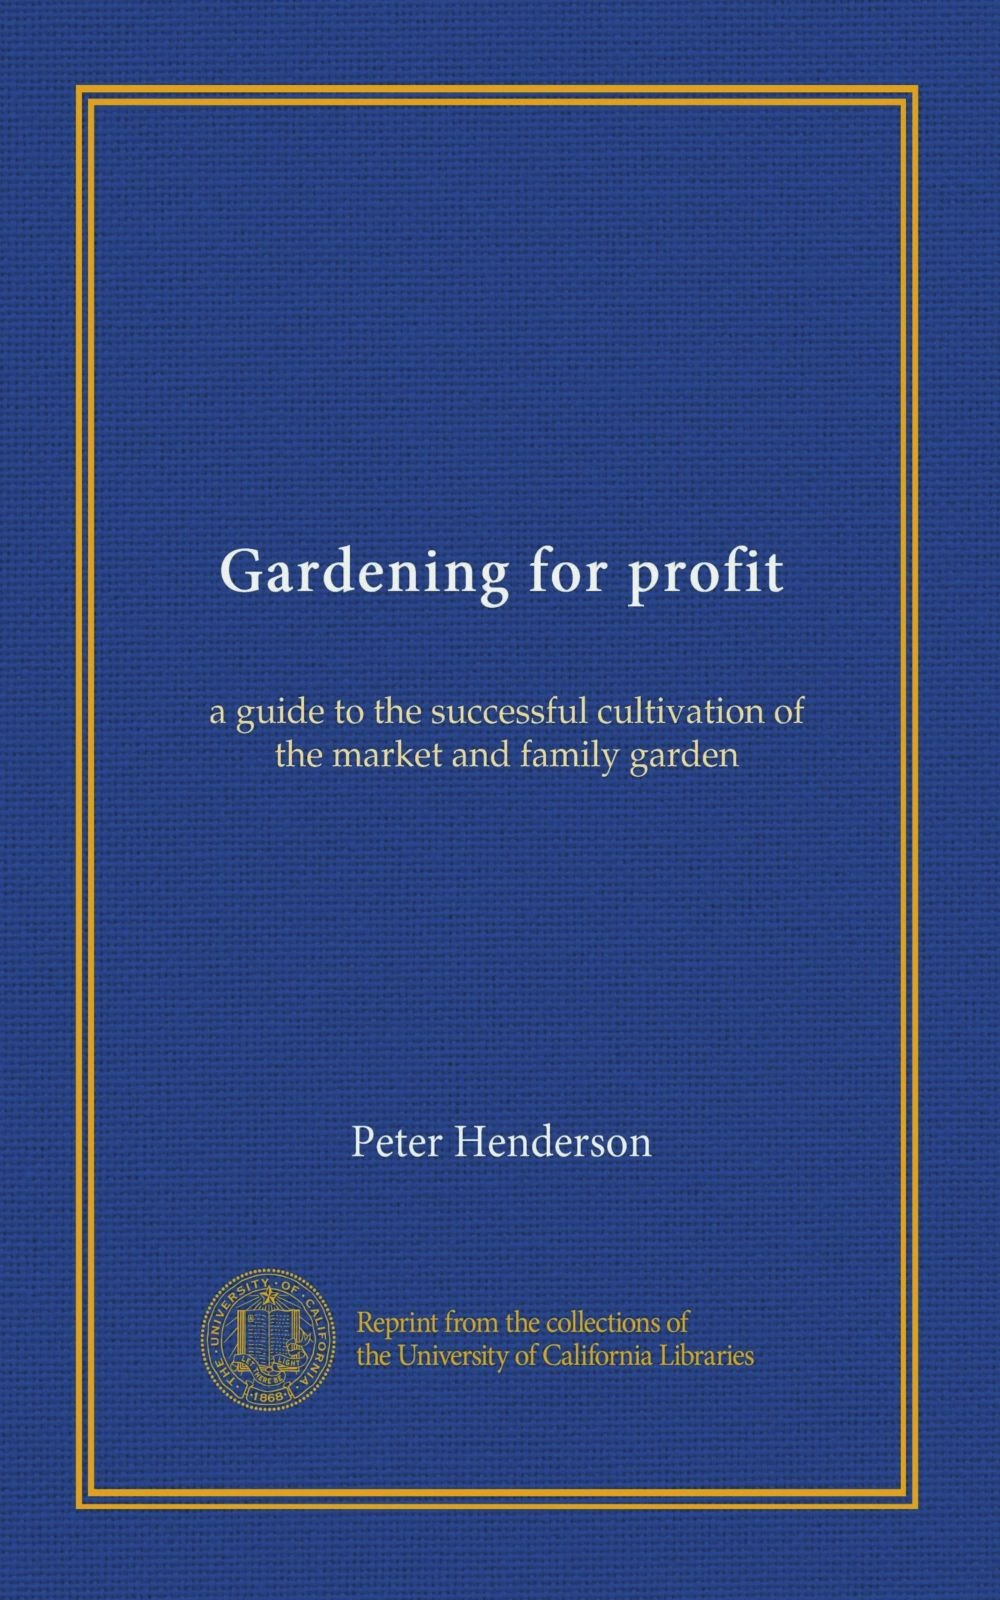 Download Gardening for profit: a guide to the successful cultivation of the market and family garden PDF